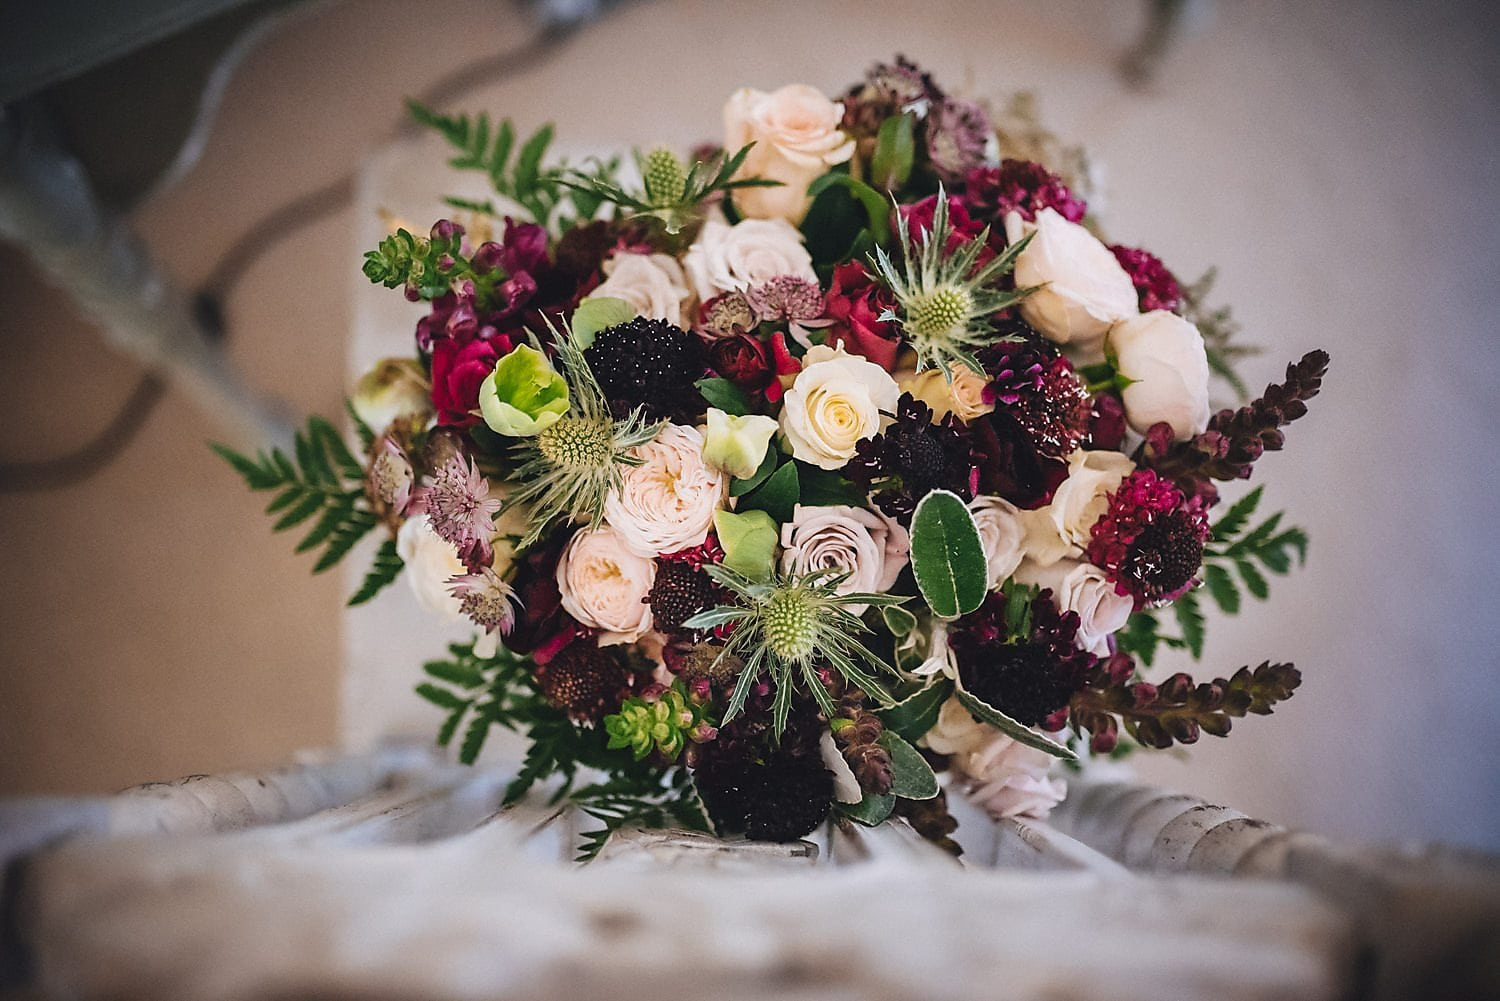 The bridal bouquet by Wild Willow Flowers. Featuring deep plums and pale pinks